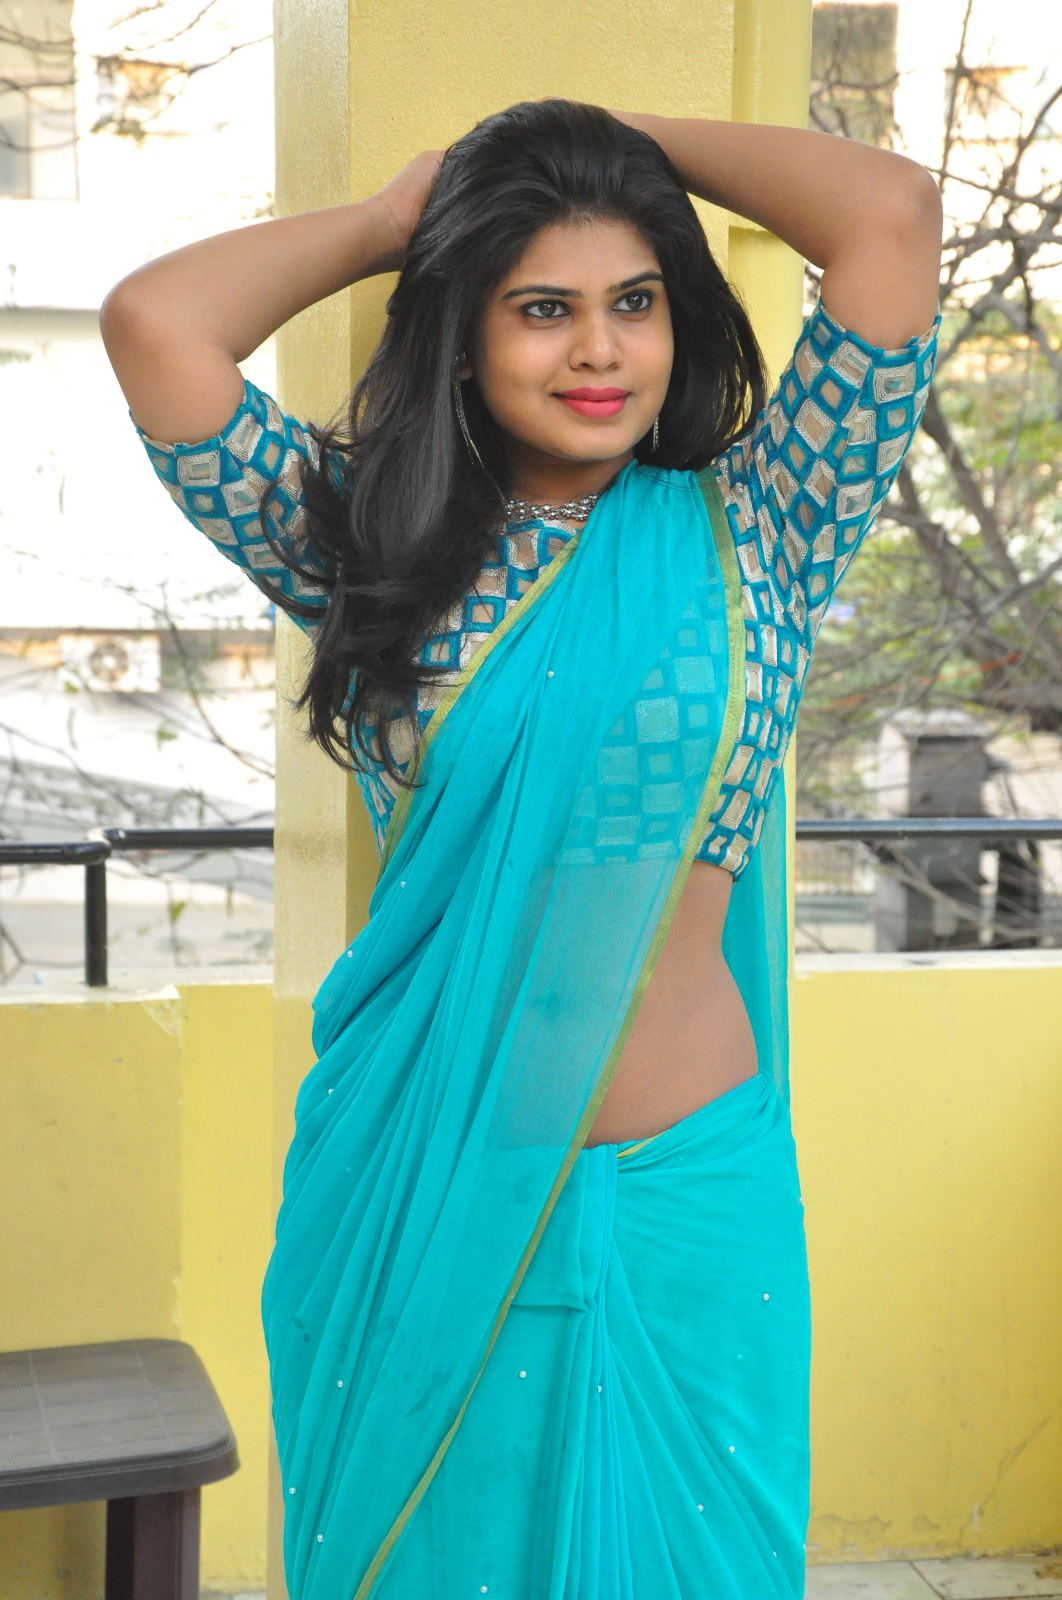 alekhya Brand New Sexy Photo Stills of Alekhya | Tollywood | Actresses Alekhya HOT pics 77